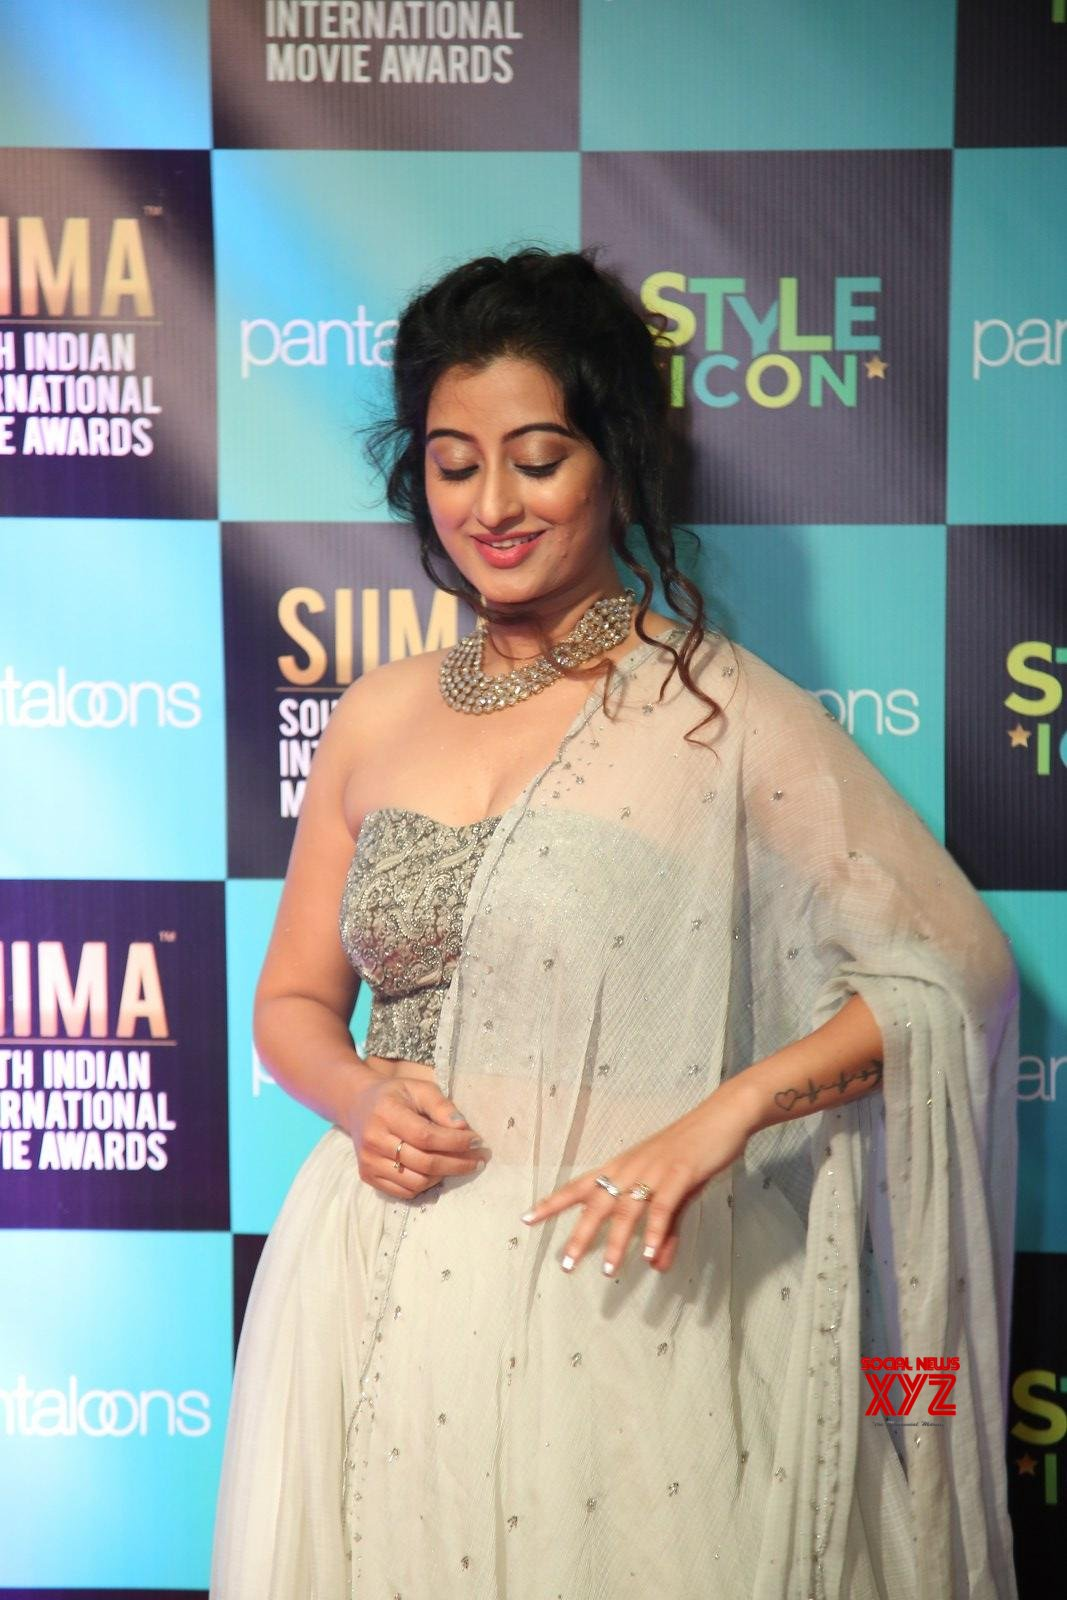 Celebs At SIIMA Awards 2019 Red Carpet In Doha Qatar Gallery Set 3